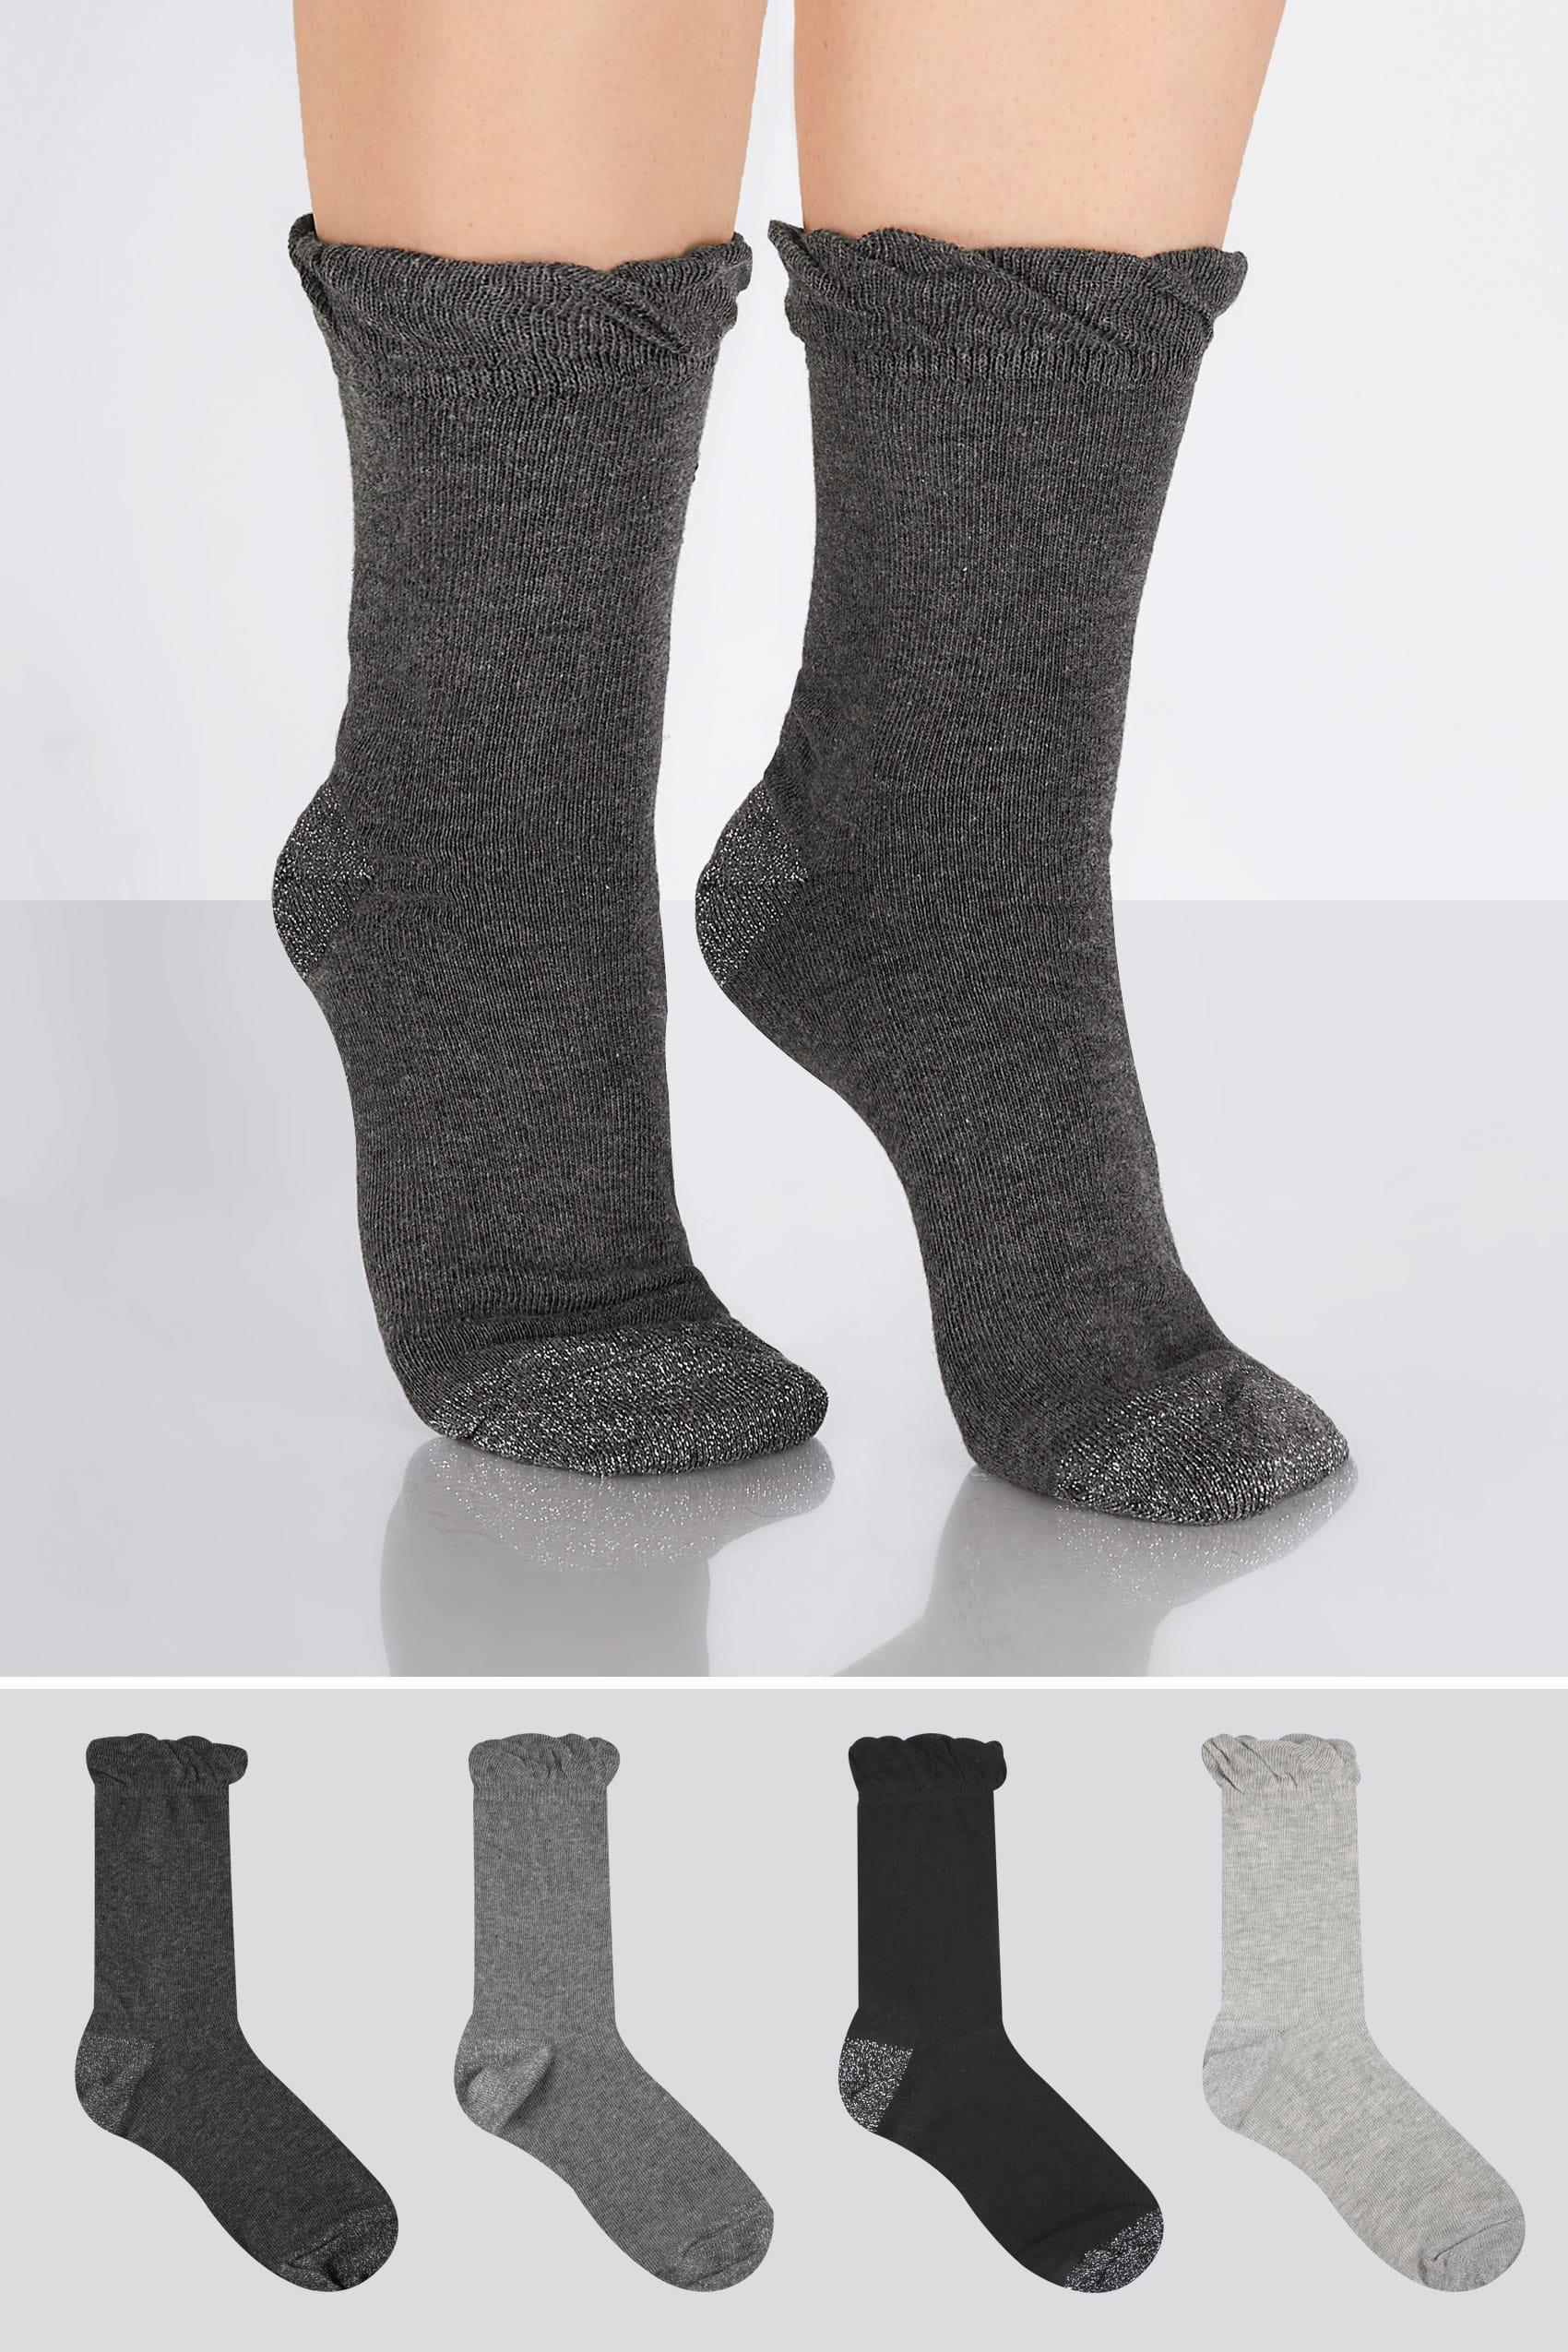 4 pack black grey socks with glitter heel 4 7 8 11 for Buy here pay later